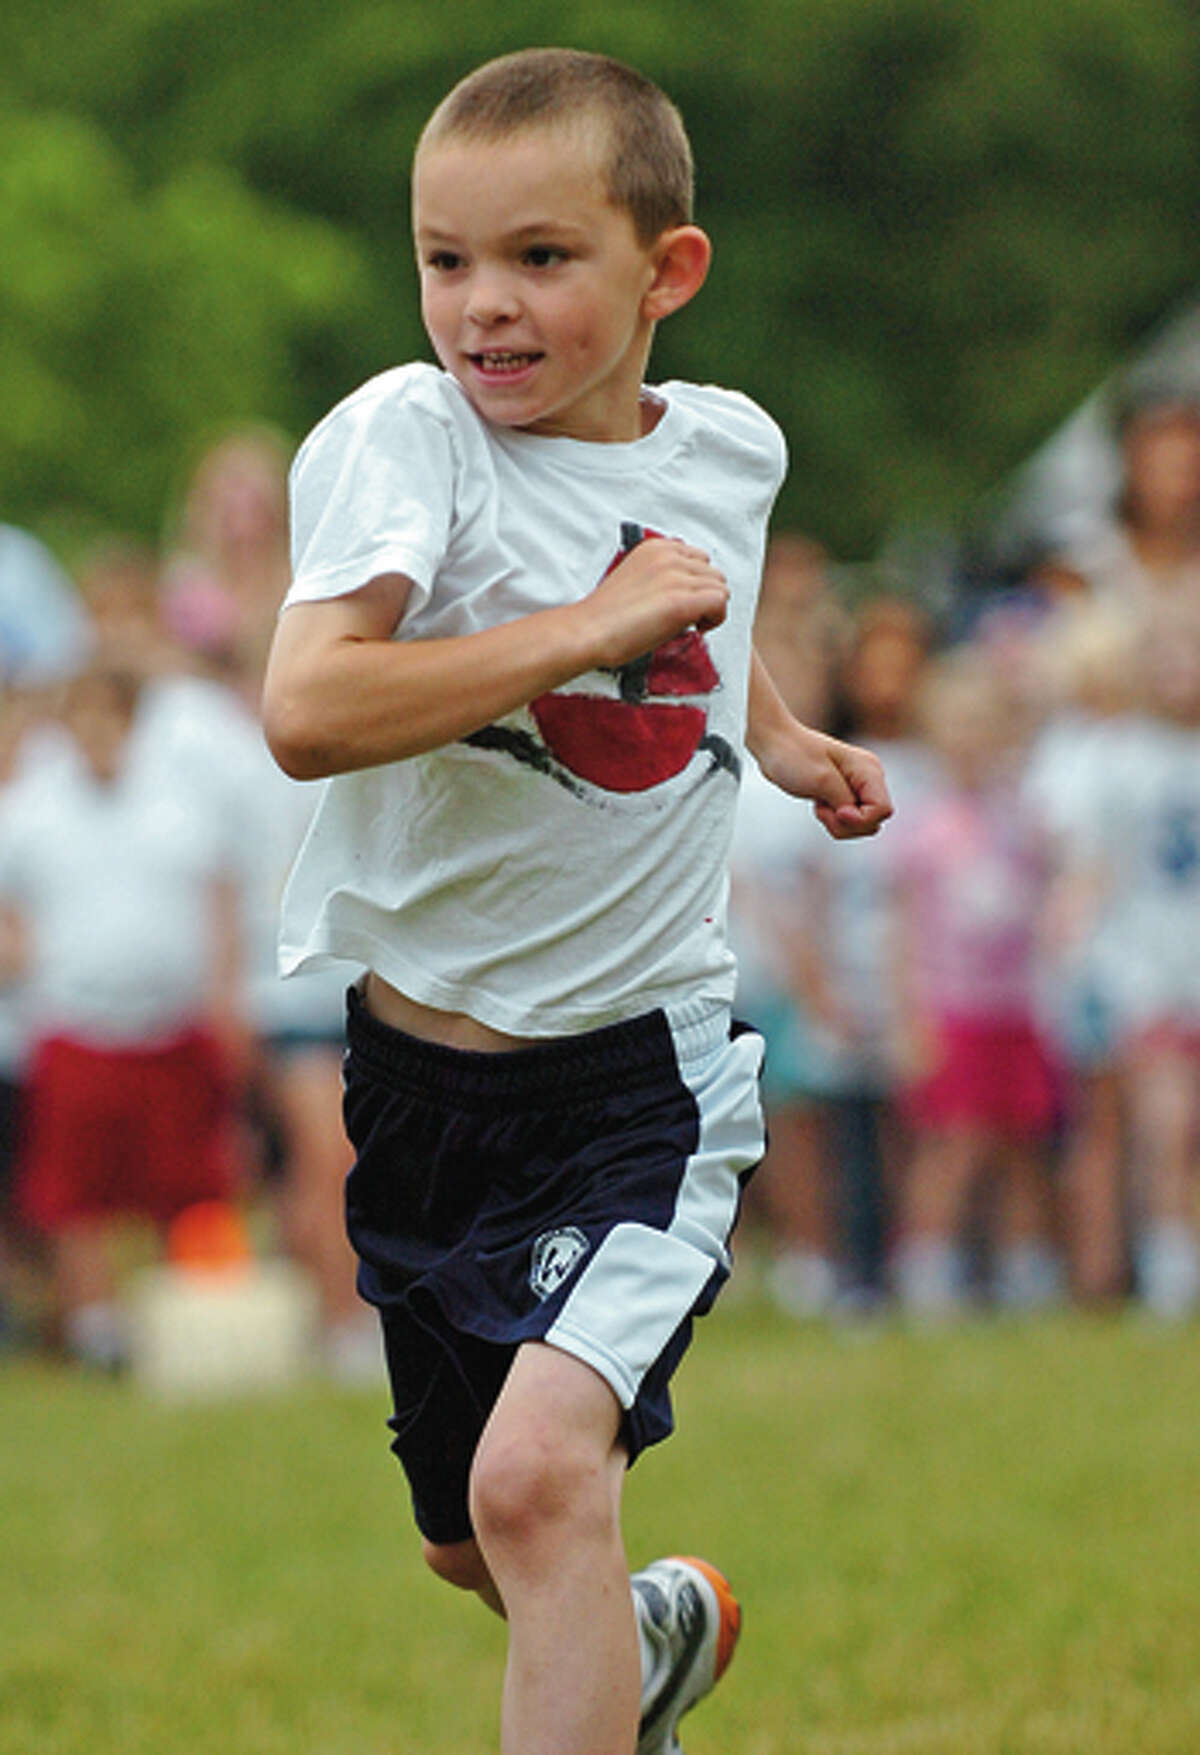 Miller Driscoll first grader Justin Lewis runs the dash during the school's field day Tuesday morning. Hour photo / Erik Trautmann